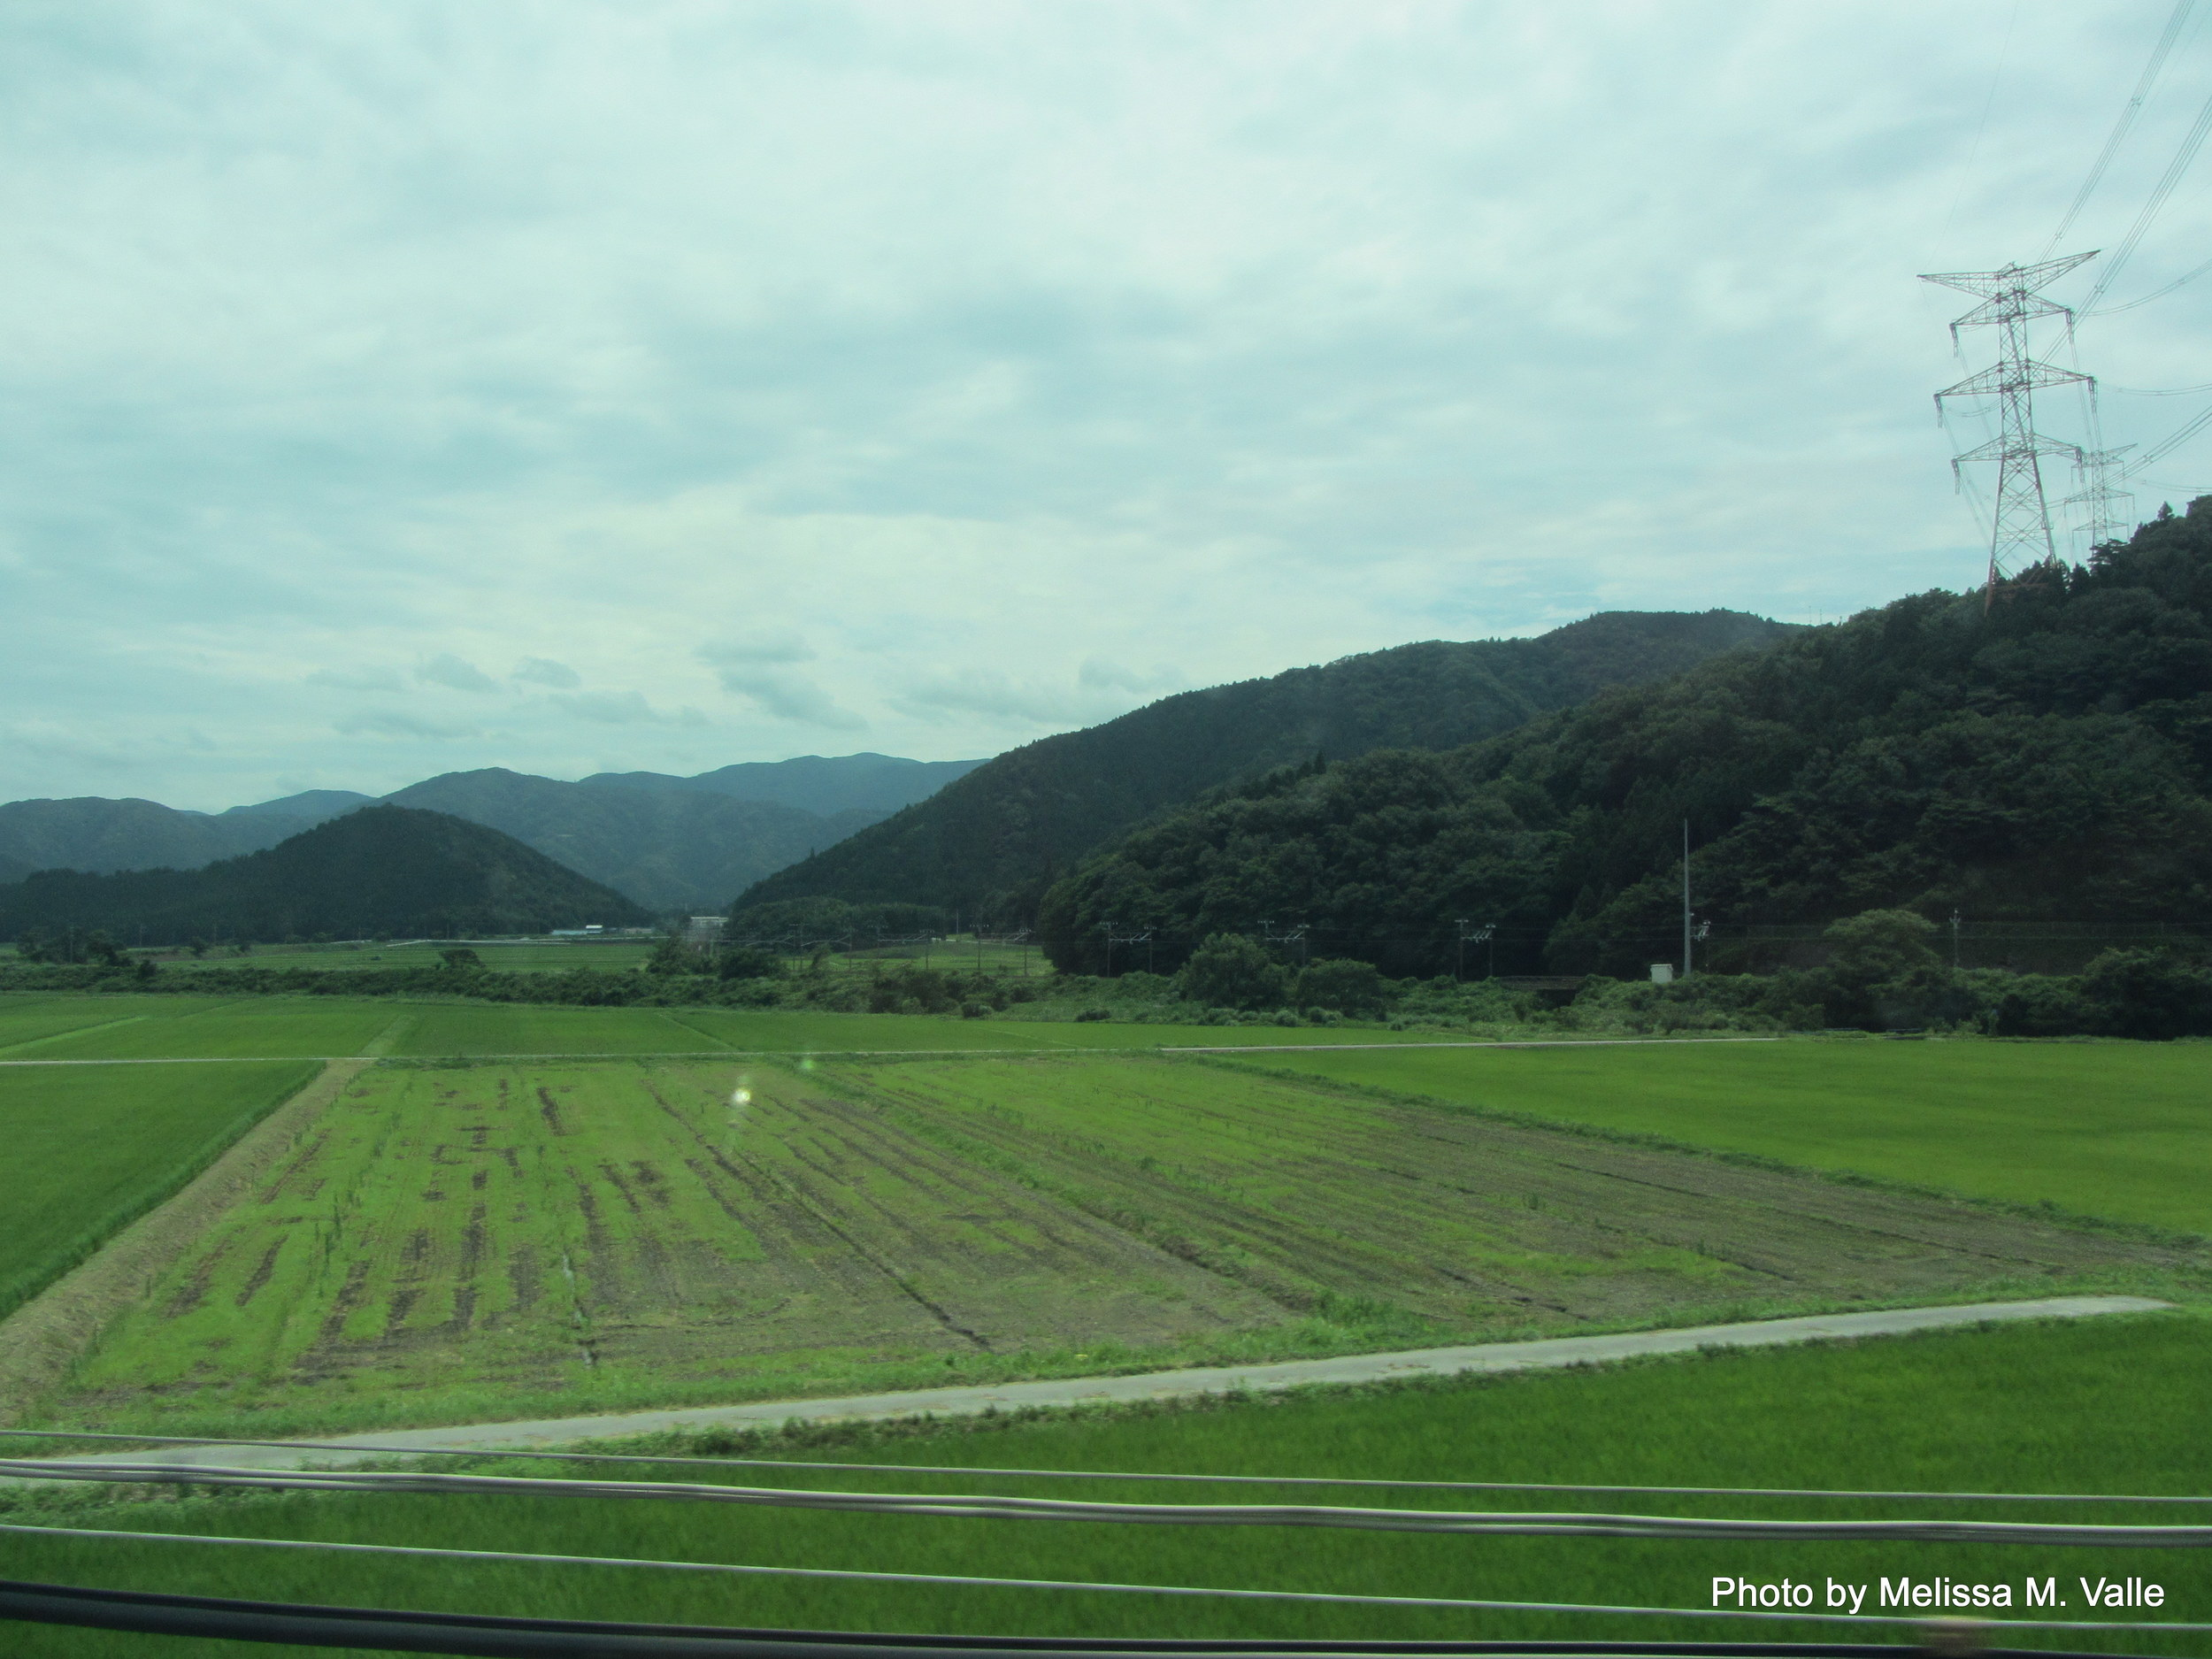 en route to kyoto from tokyo